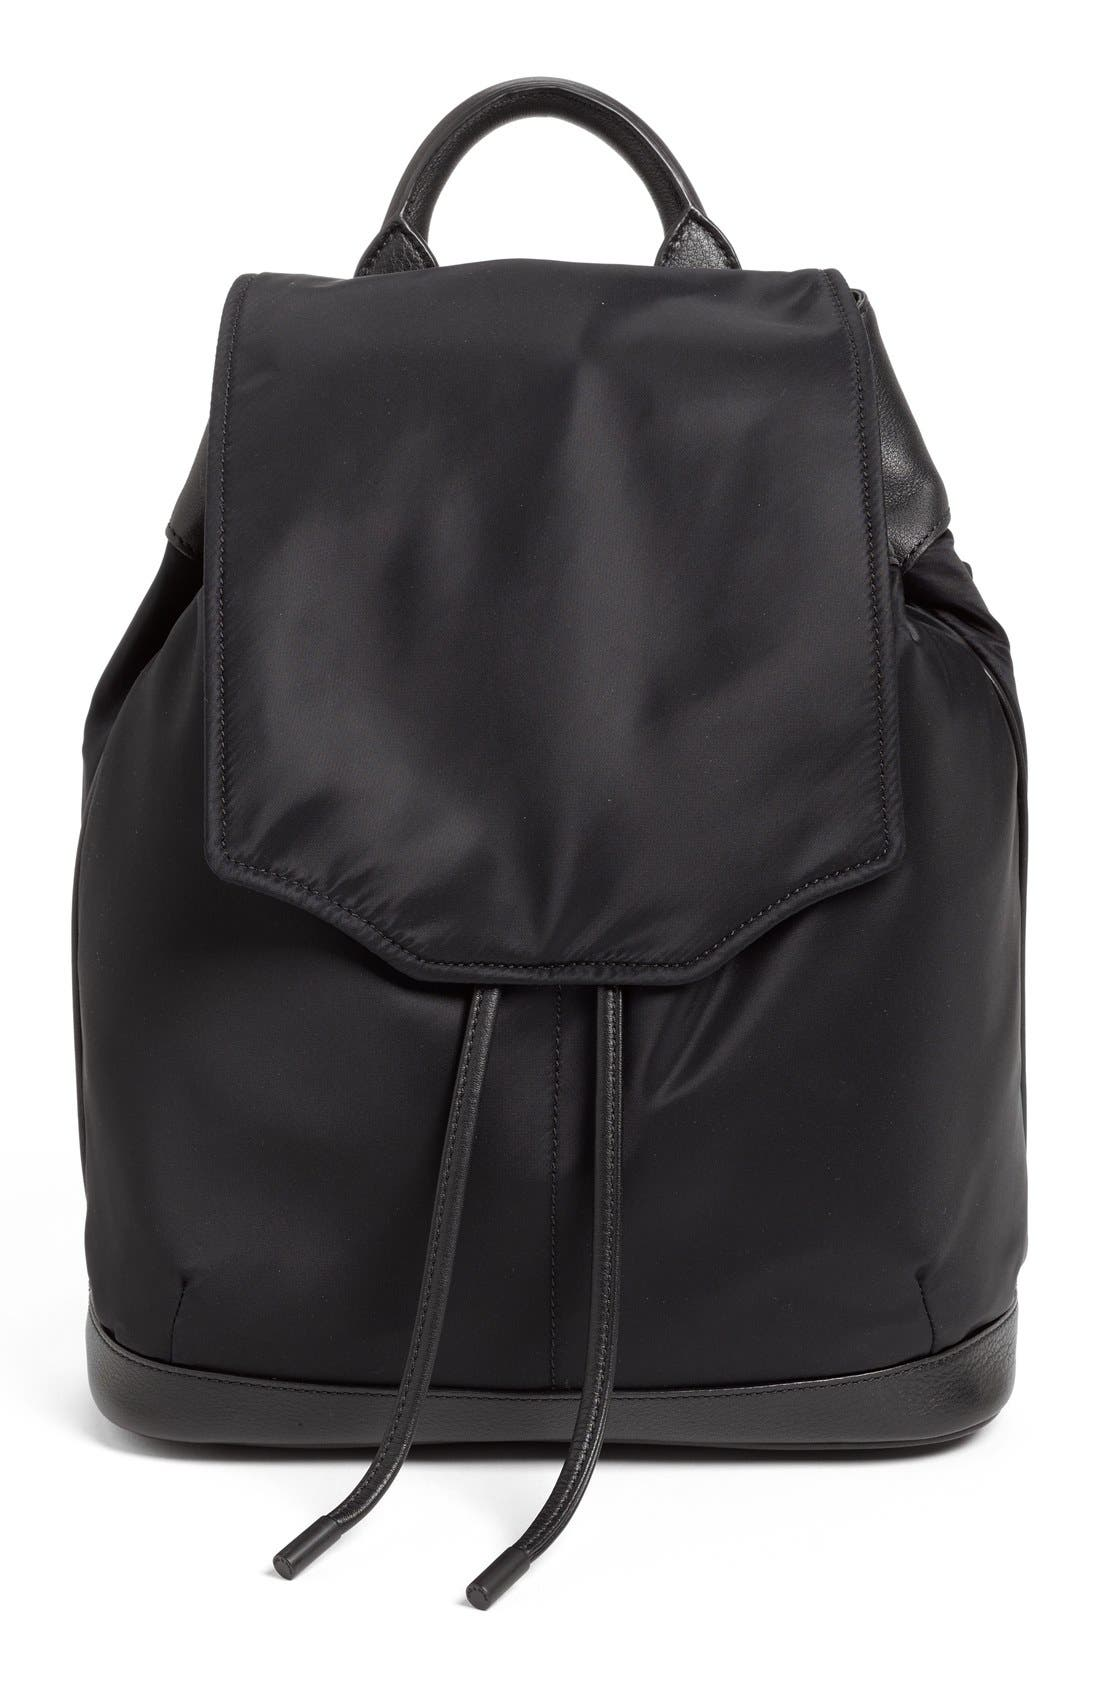 RAG & BONE 'Pilot' Nylon Backpack, Main, color, 002